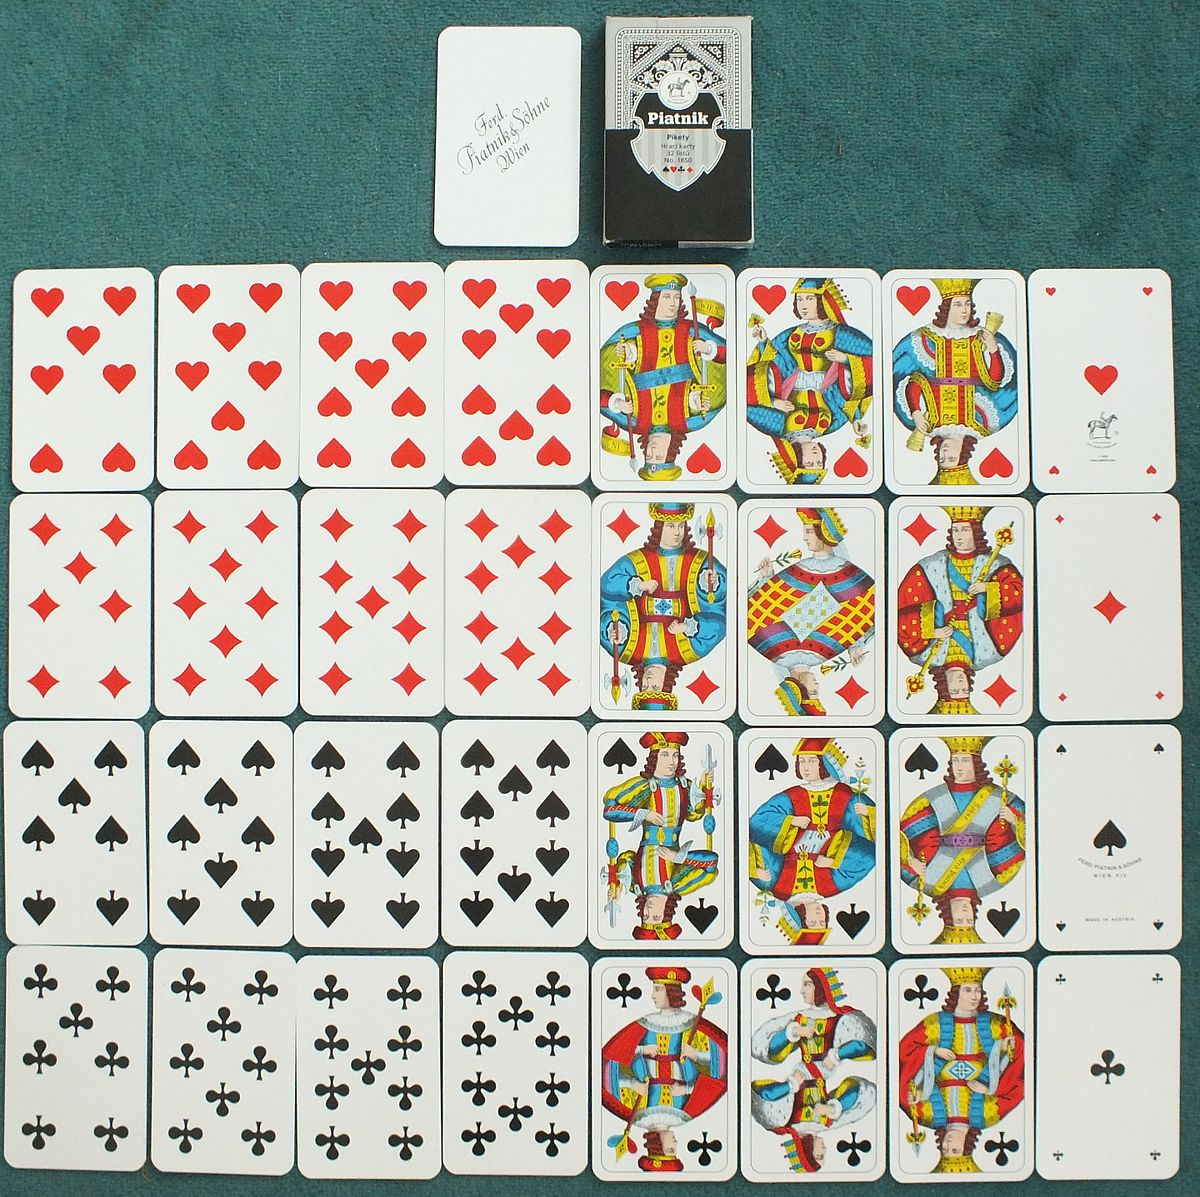 how to create a deck of cards